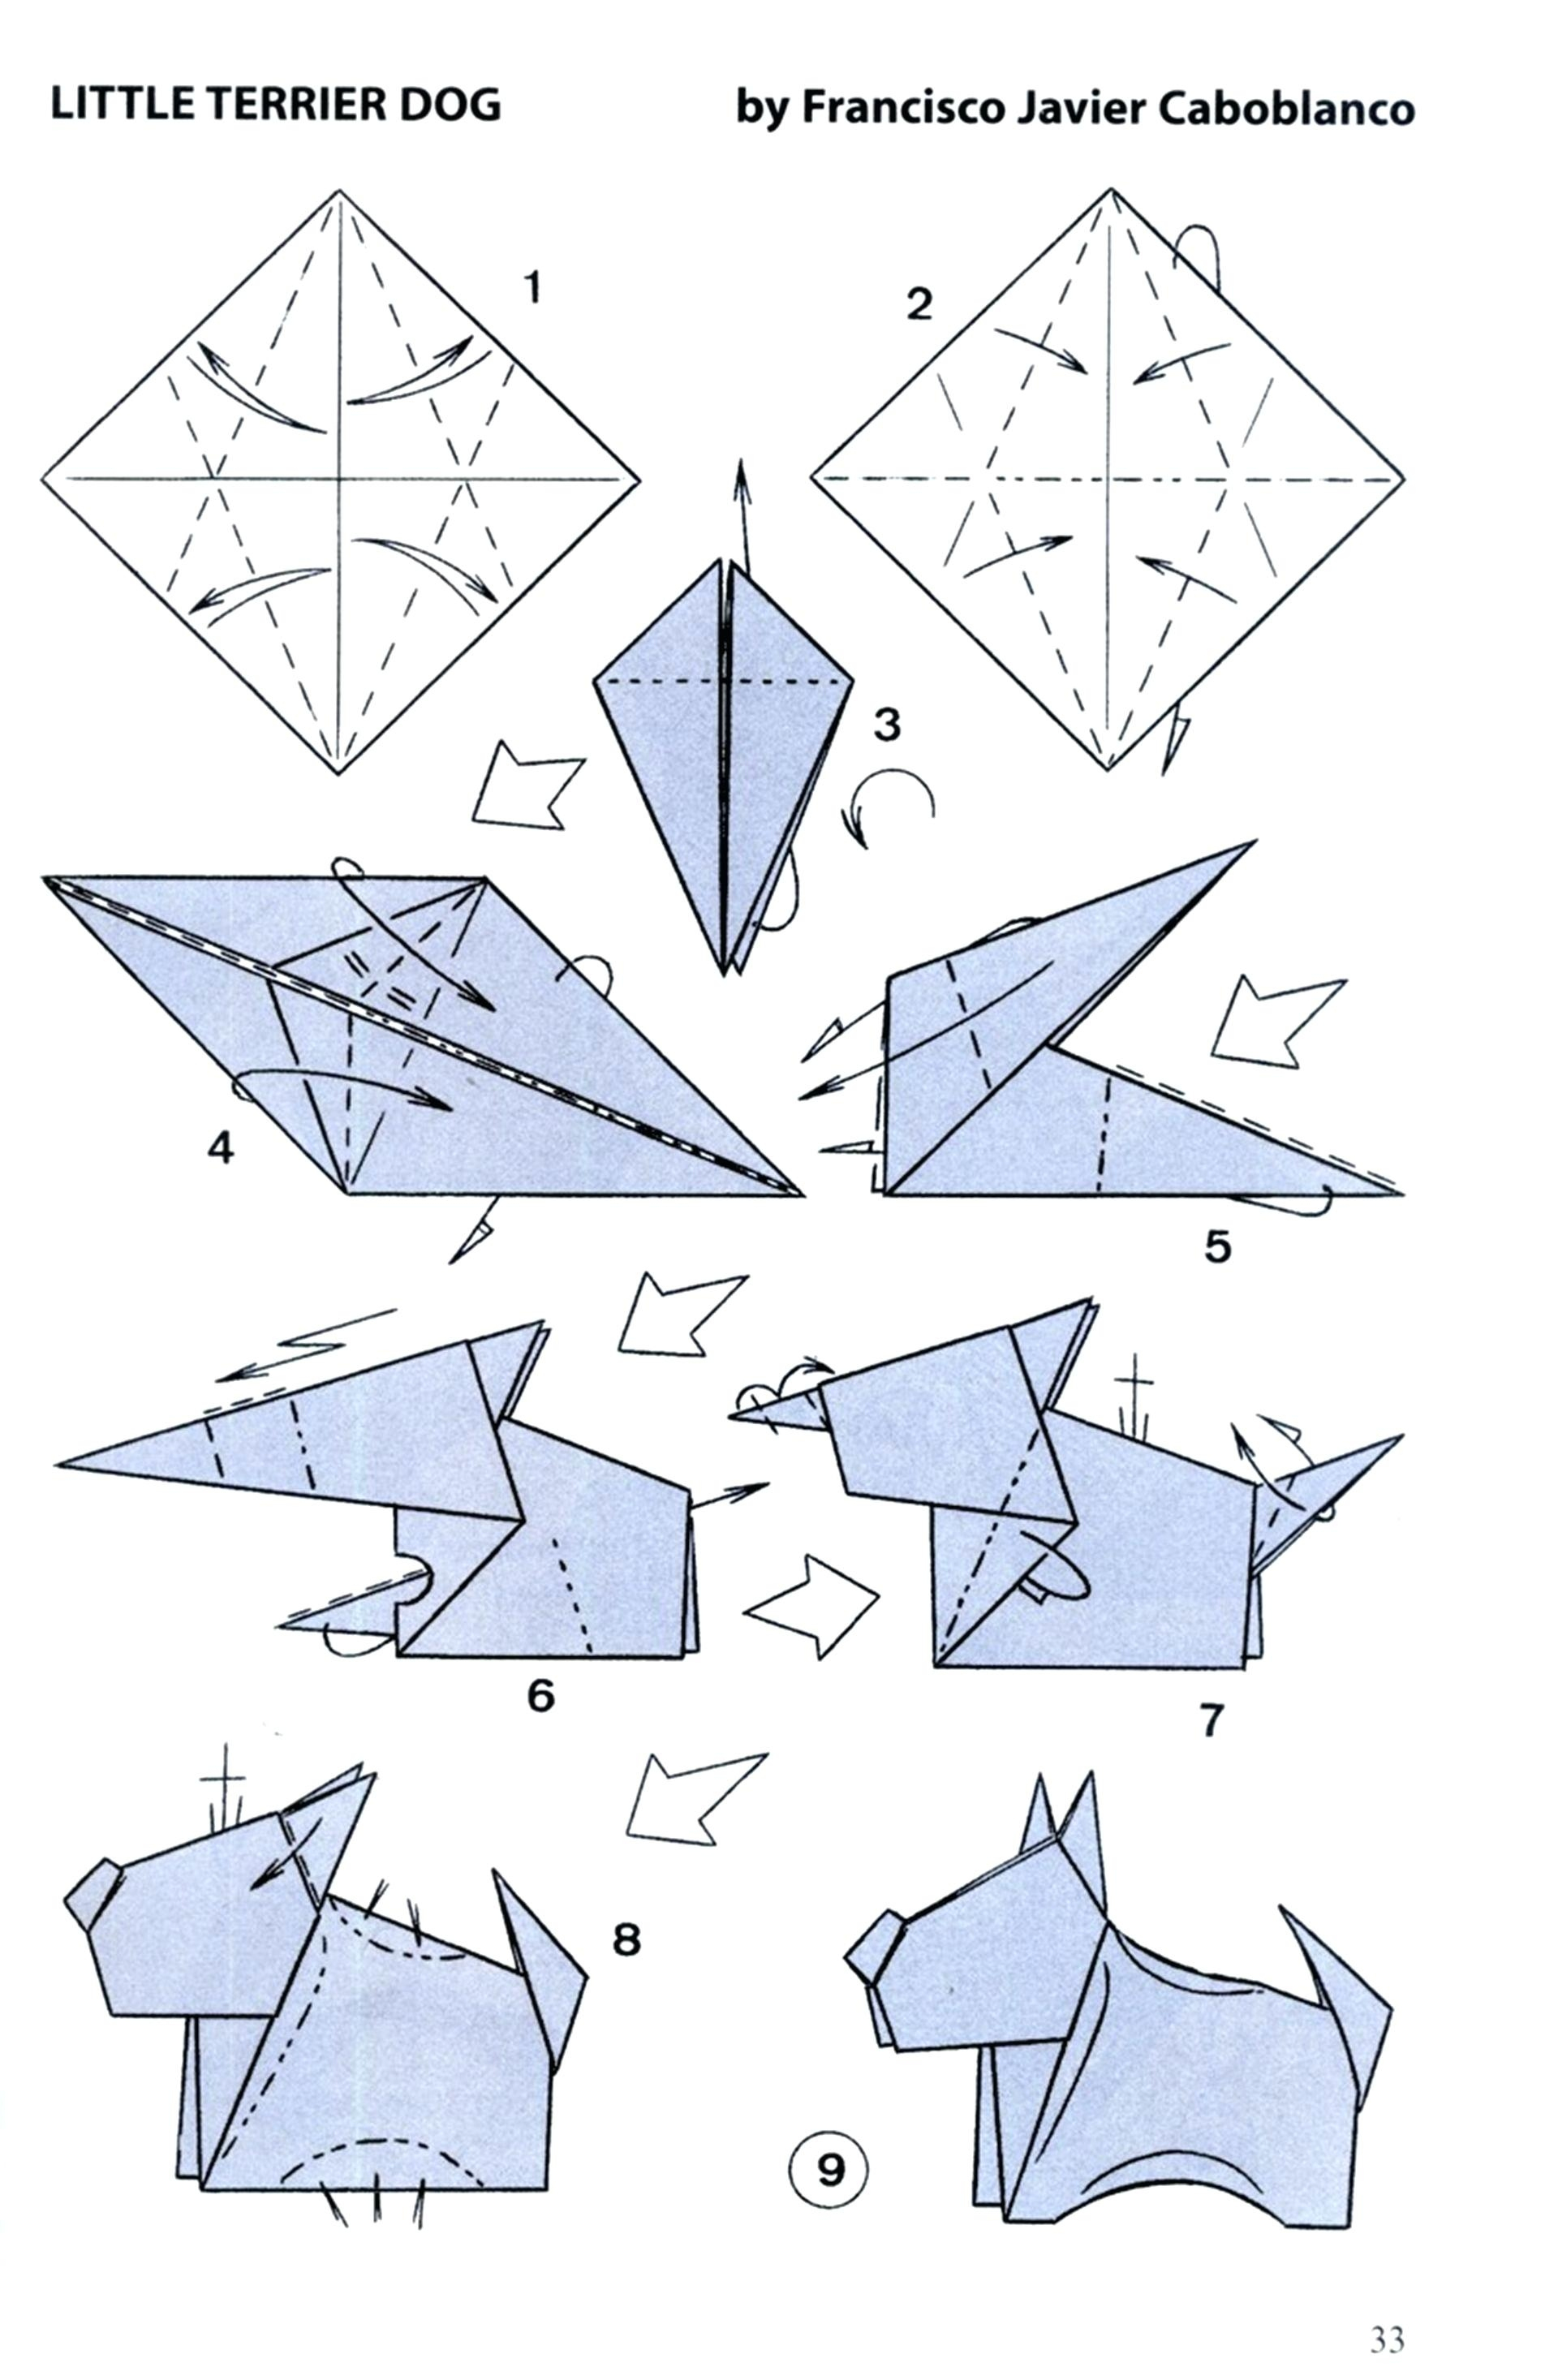 Free Origami Instructions Image Collections - Form 1040 Instructions - Printable Origami Instructions Free